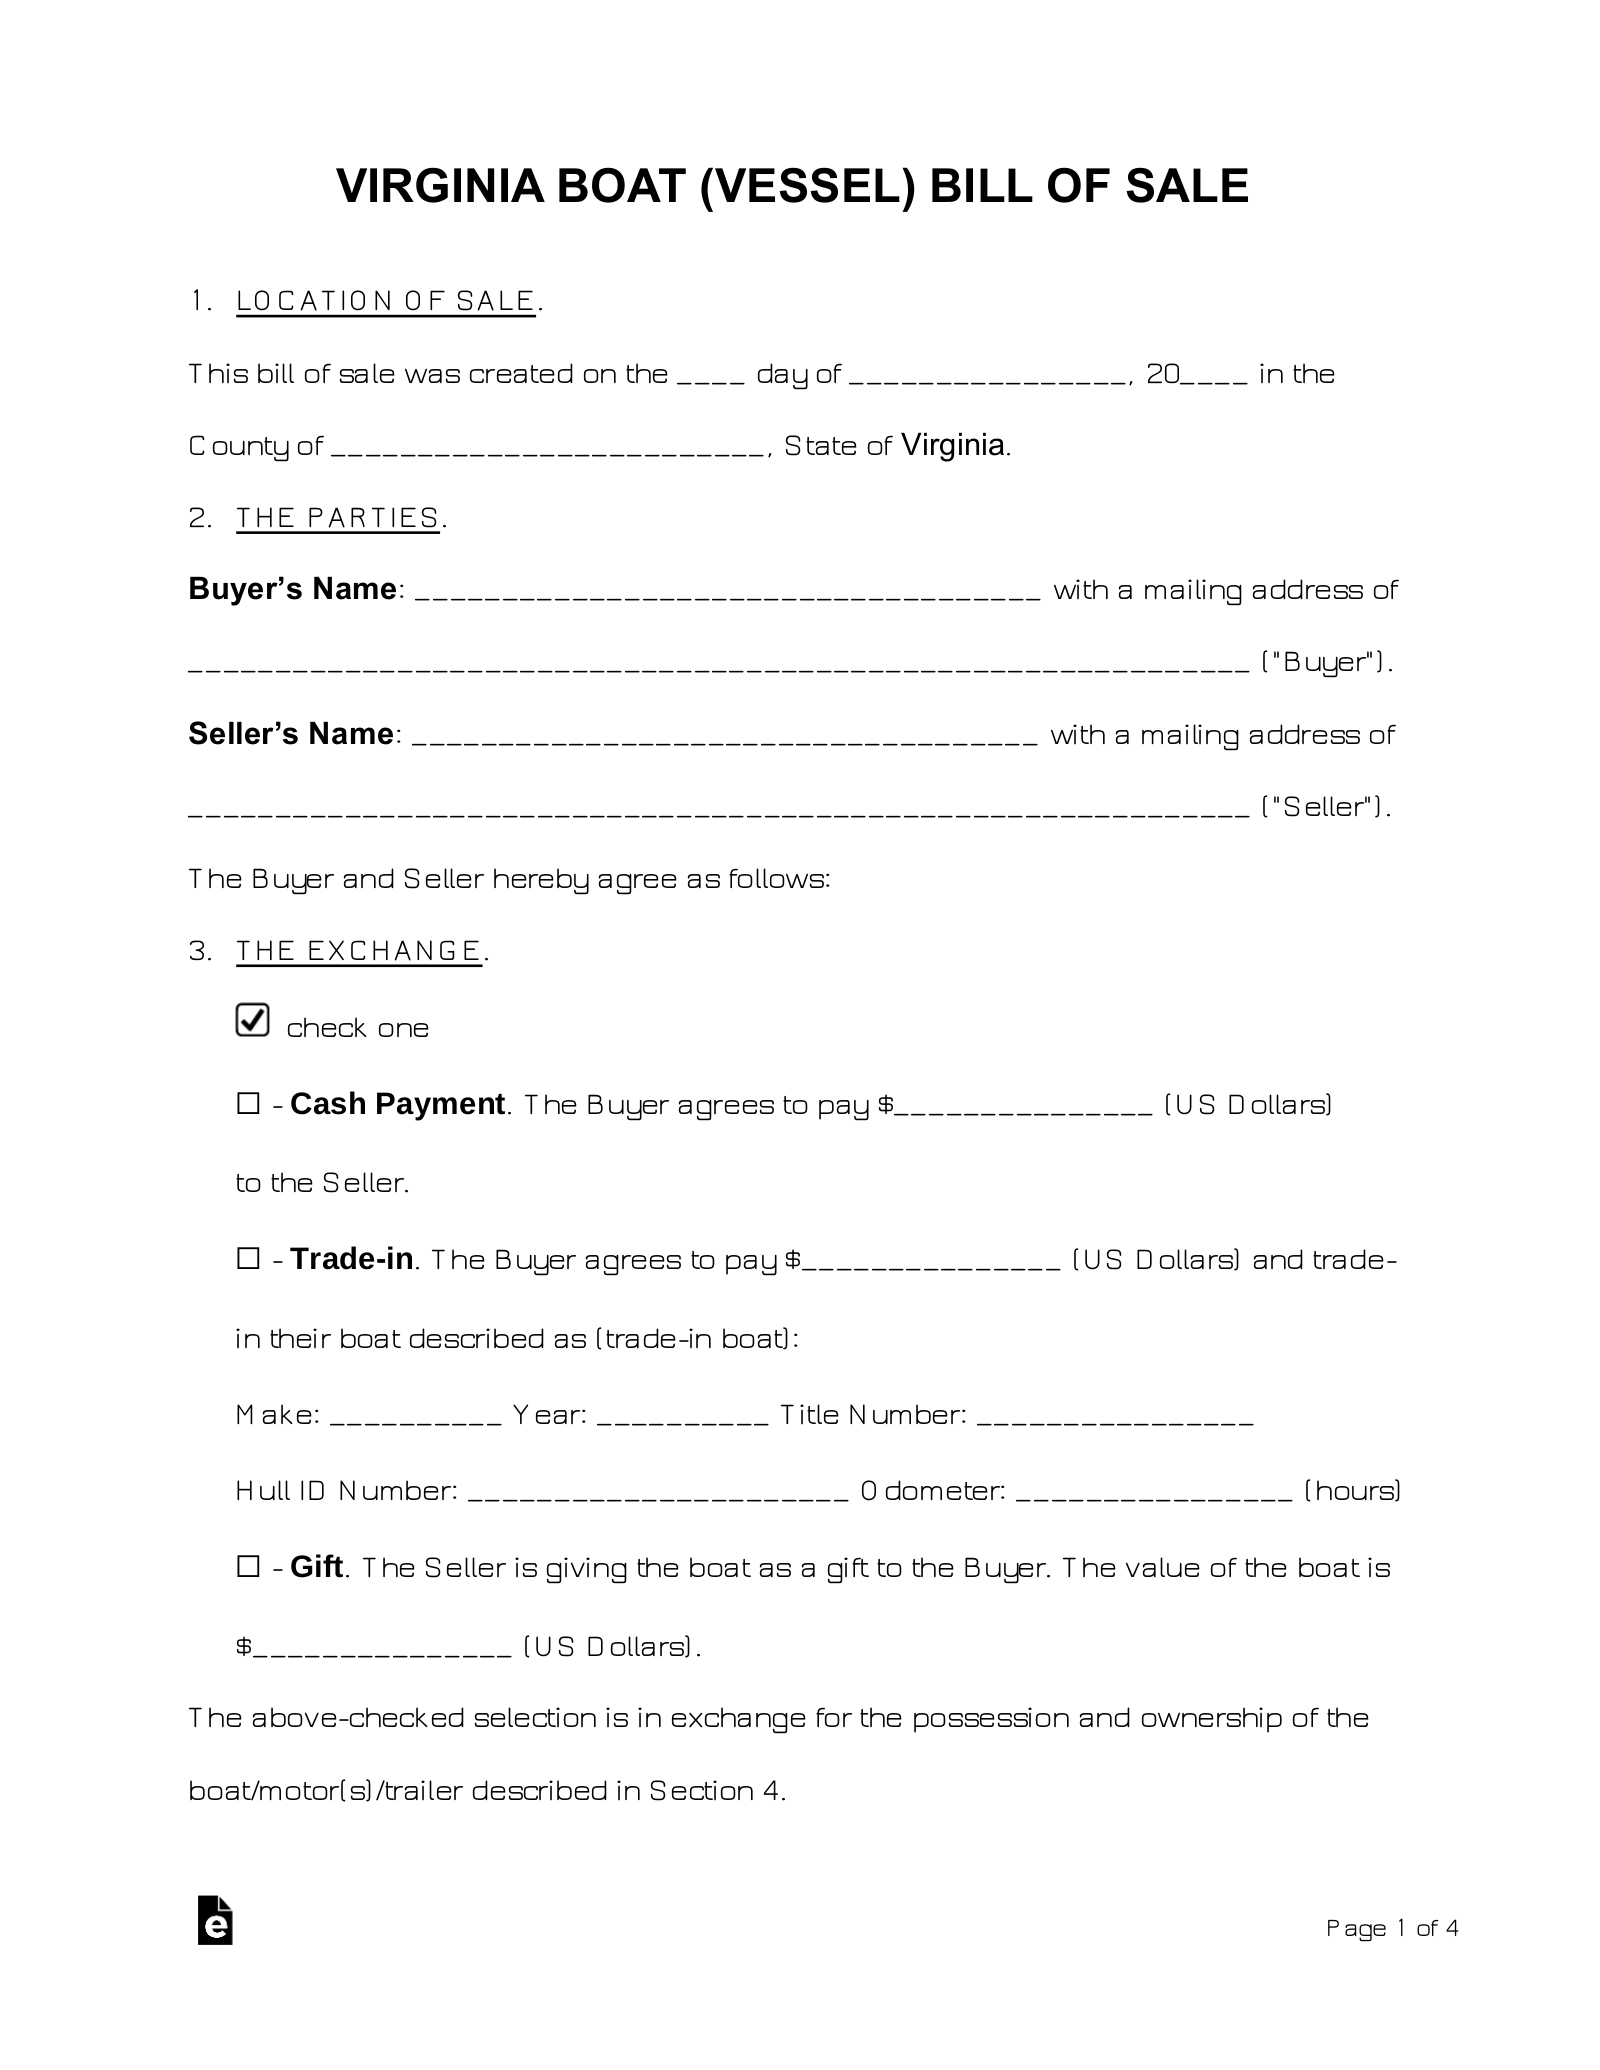 Free Virginia Boat Bill Of Sale Form